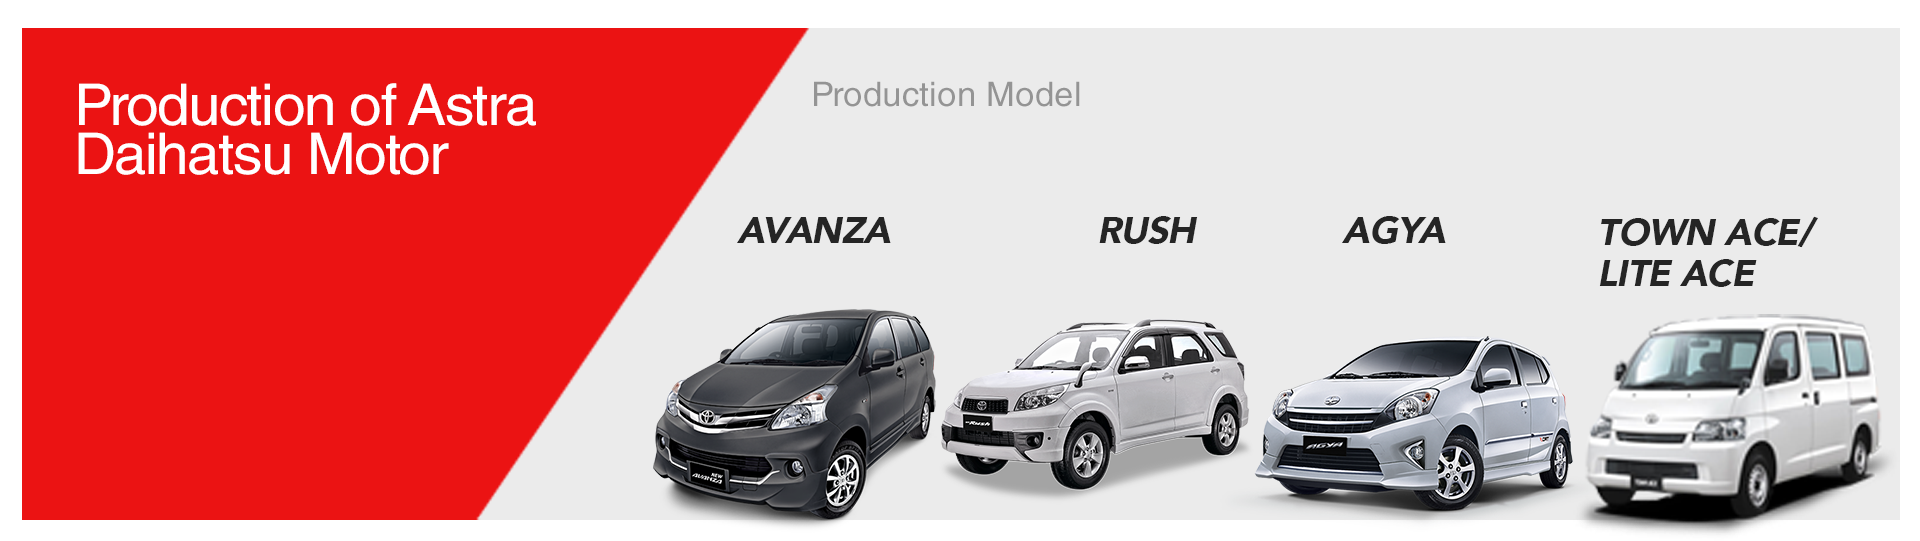 Toyota-car-production-in-indonesia-by-toyota-group-(2).png